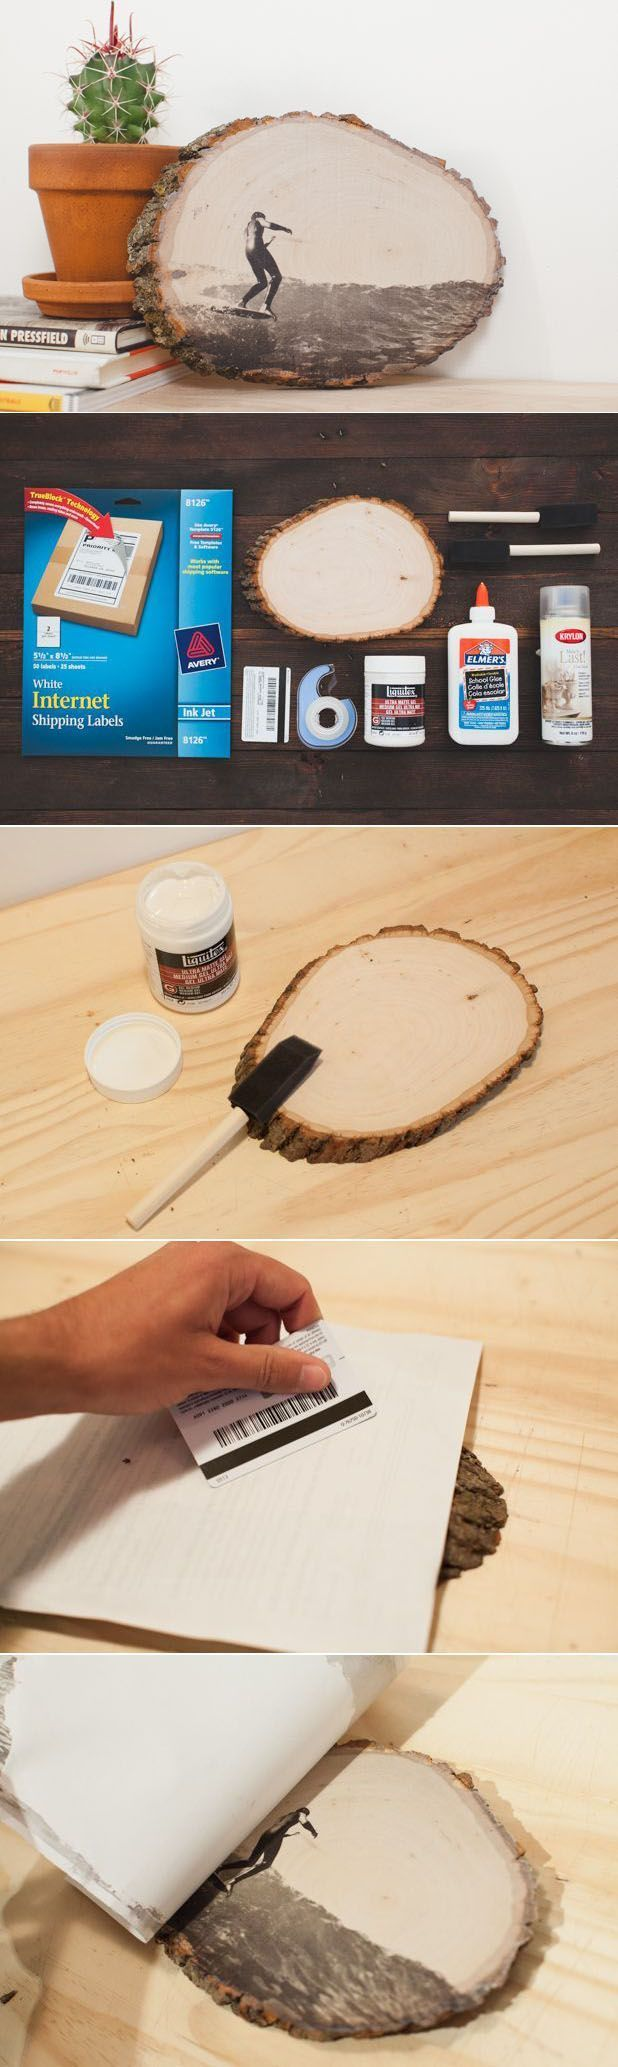 How To: Transfer Ink To Wood - Tutorial #DIY #home